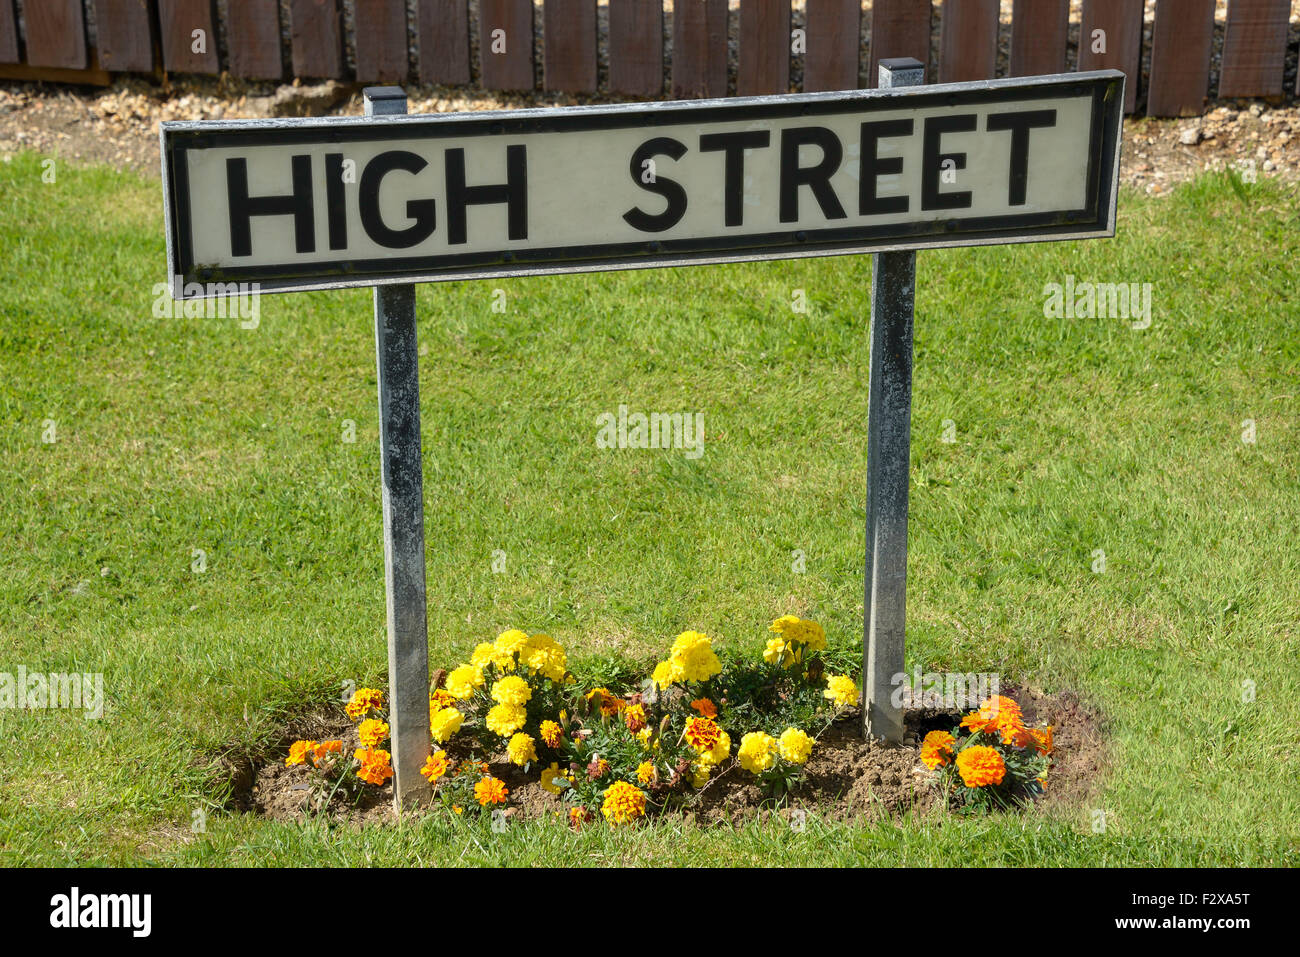 High Street, Silverstone, Northamptonshire, England, United Kingdom - Stock Image